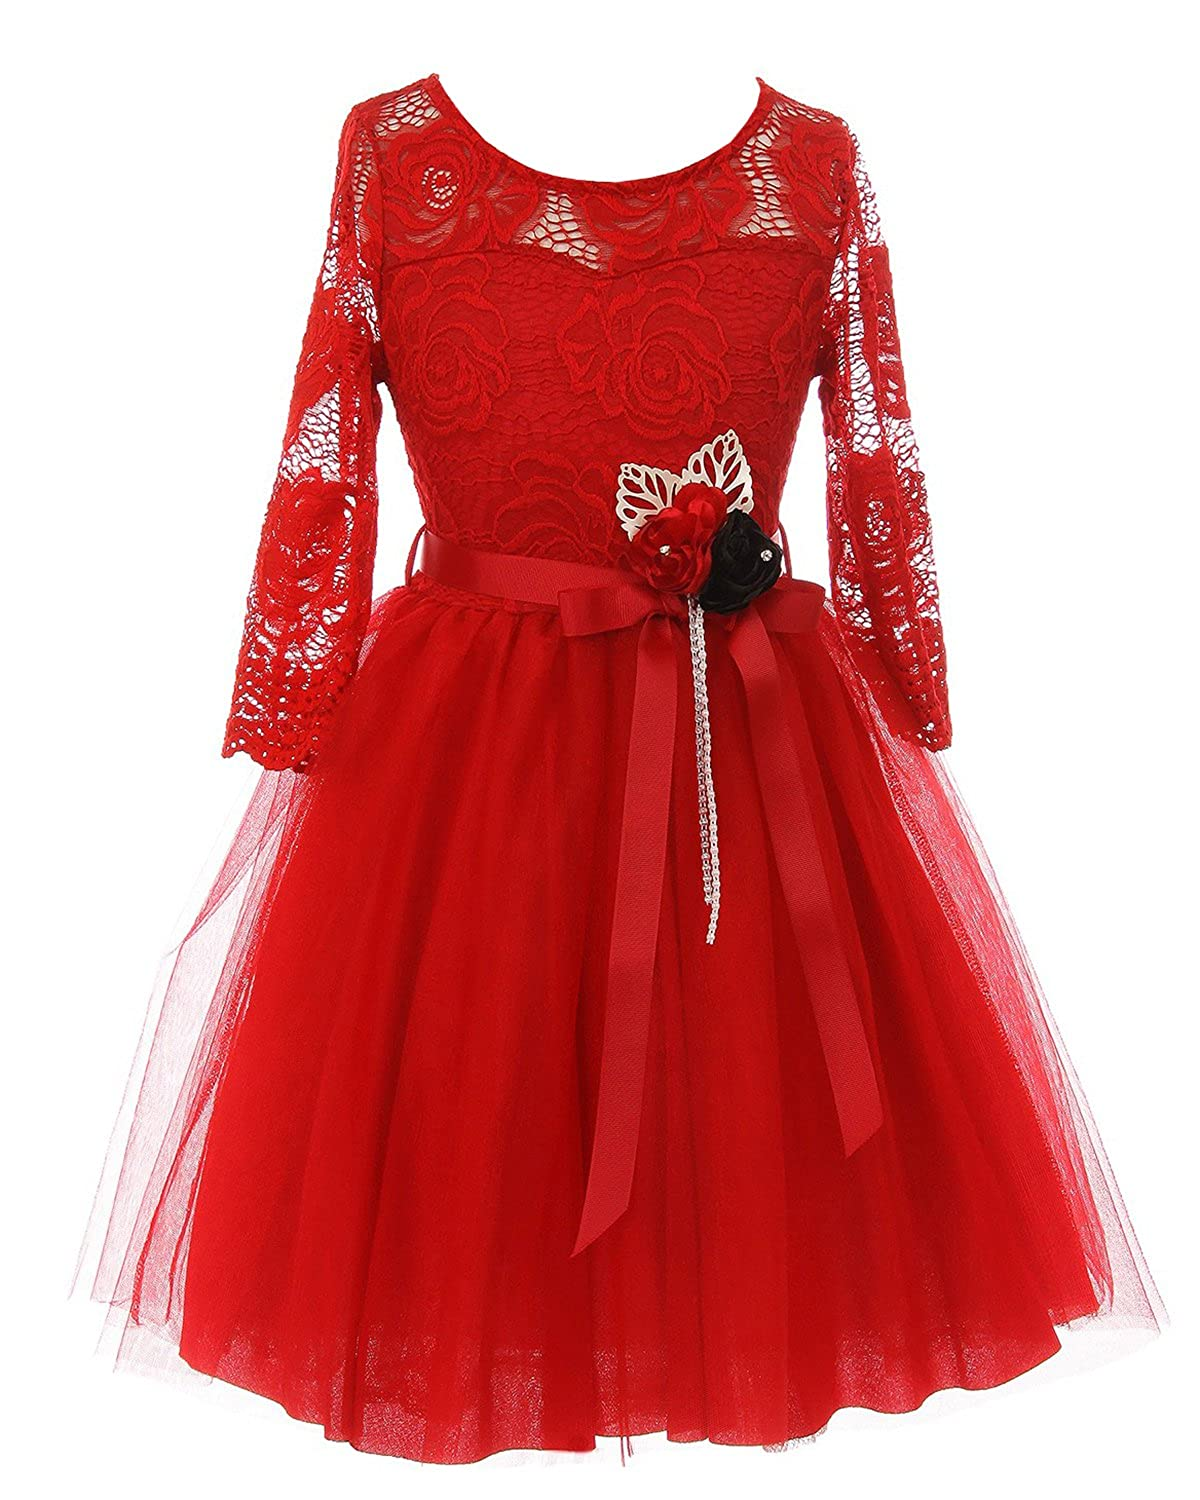 a2b59b352e 3 4 Sleeve Floral Lace Christmas Holiday Flower Girl dress. Content  100%  polyester. T length dress